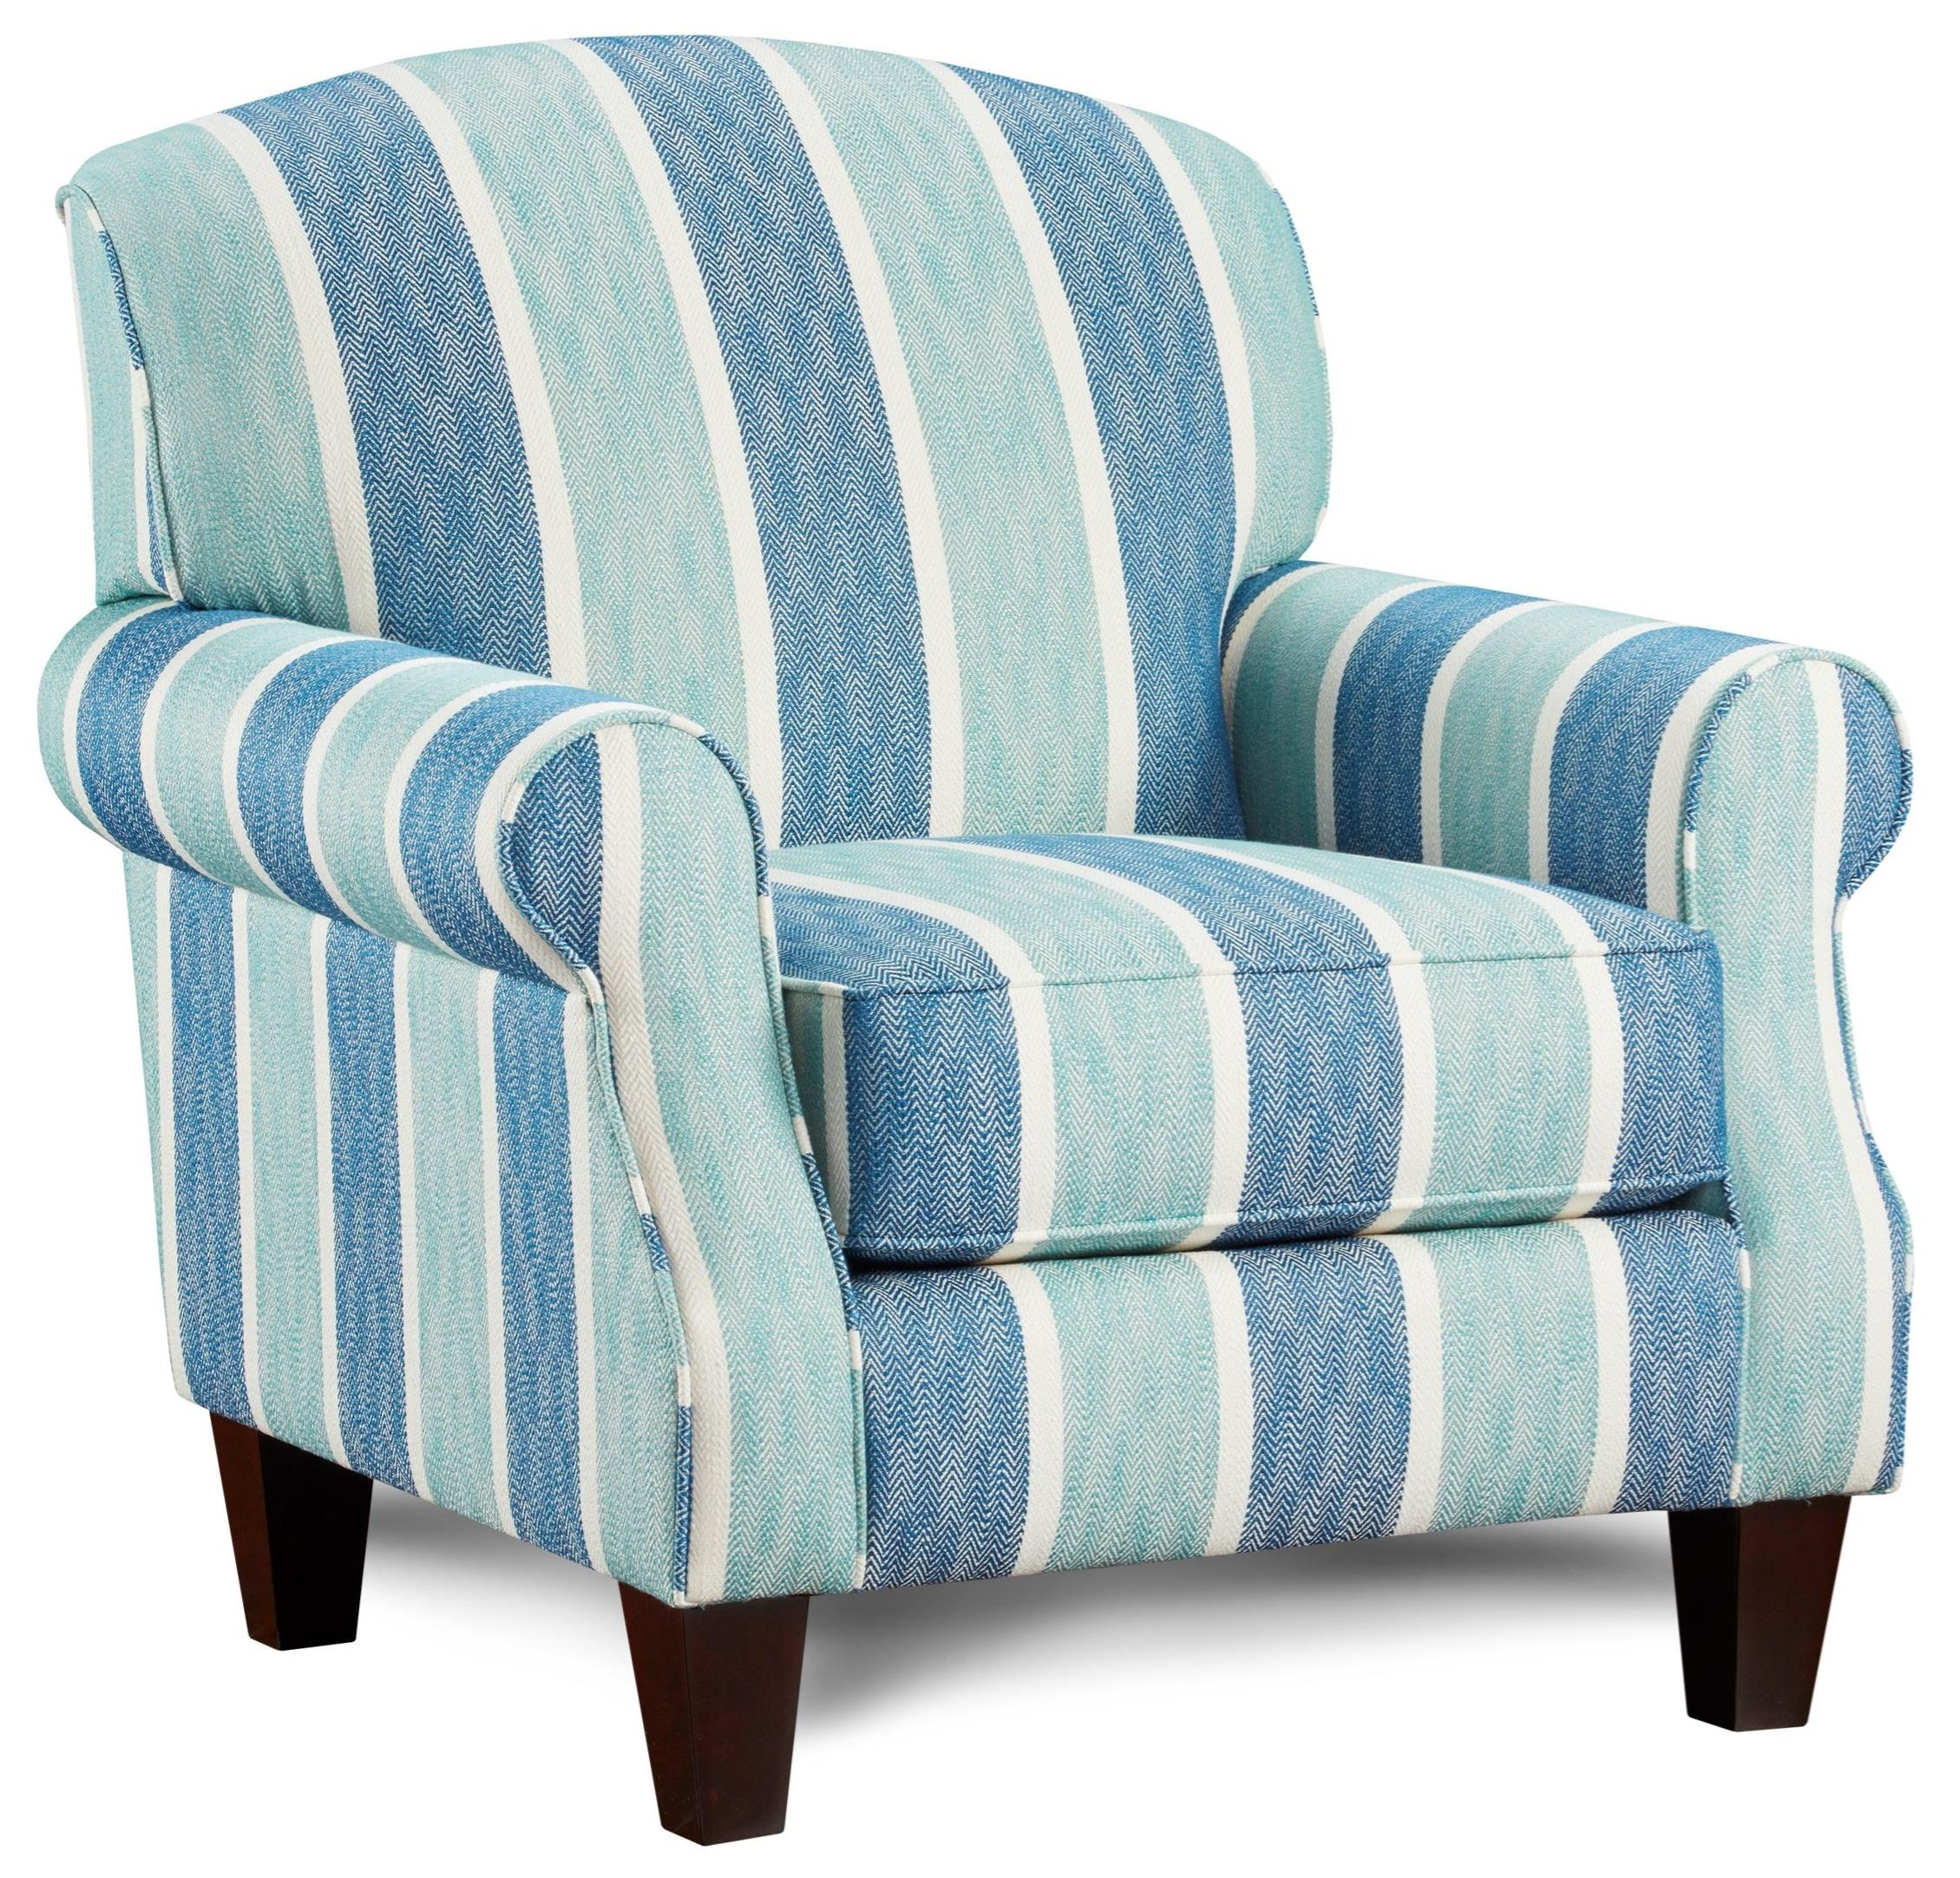 532 Accent Chair by FN at Lindy's Furniture Company